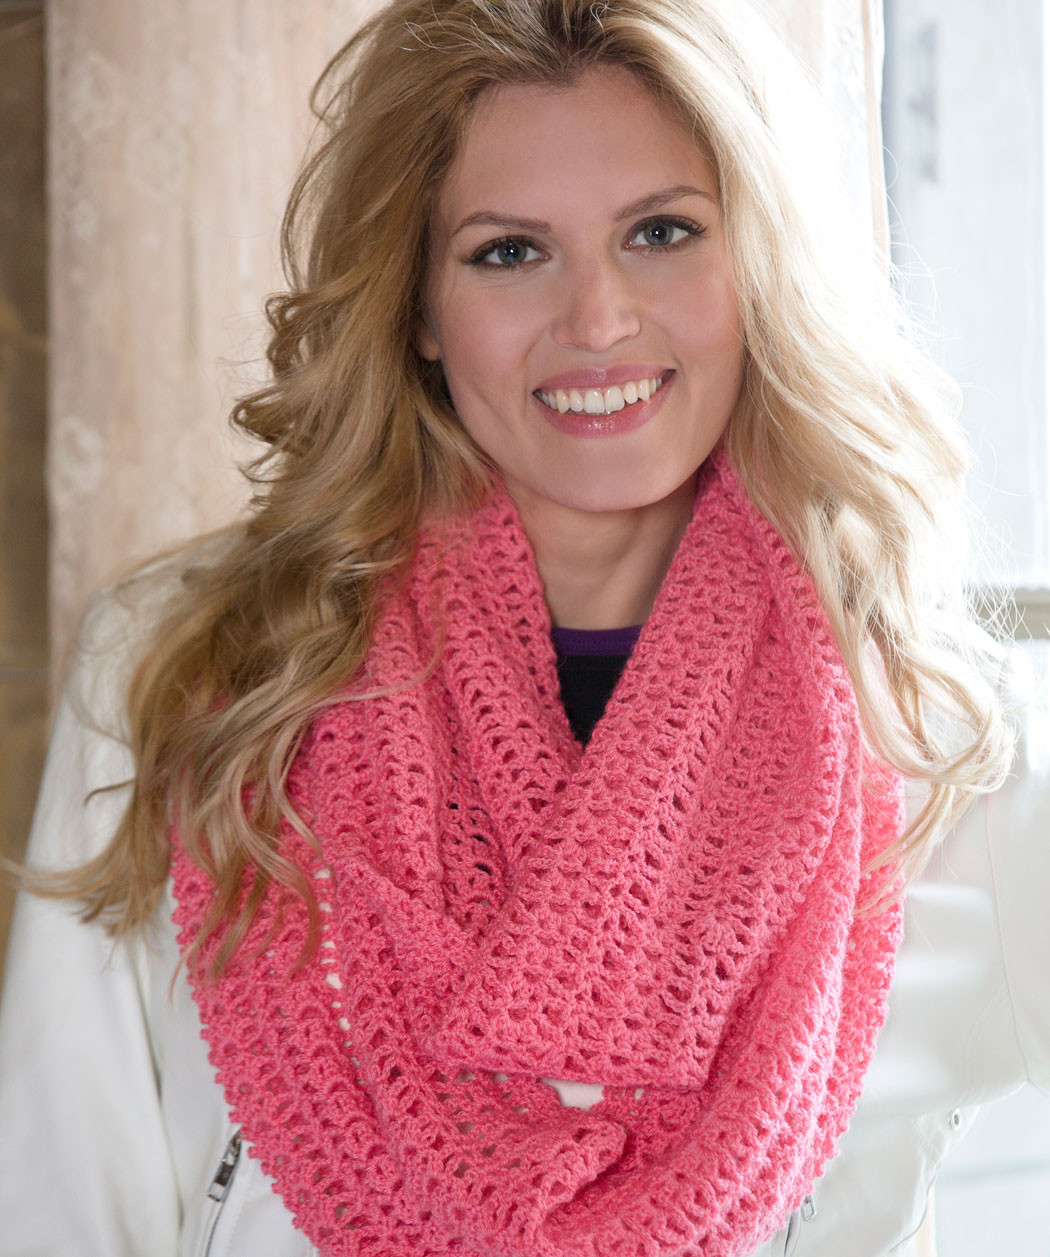 Infinity Scarf Crochet Pattern Inspirational these 20 Free and Easy Crochet Scarf Patterns Will Blow Of Fresh 49 Ideas Infinity Scarf Crochet Pattern